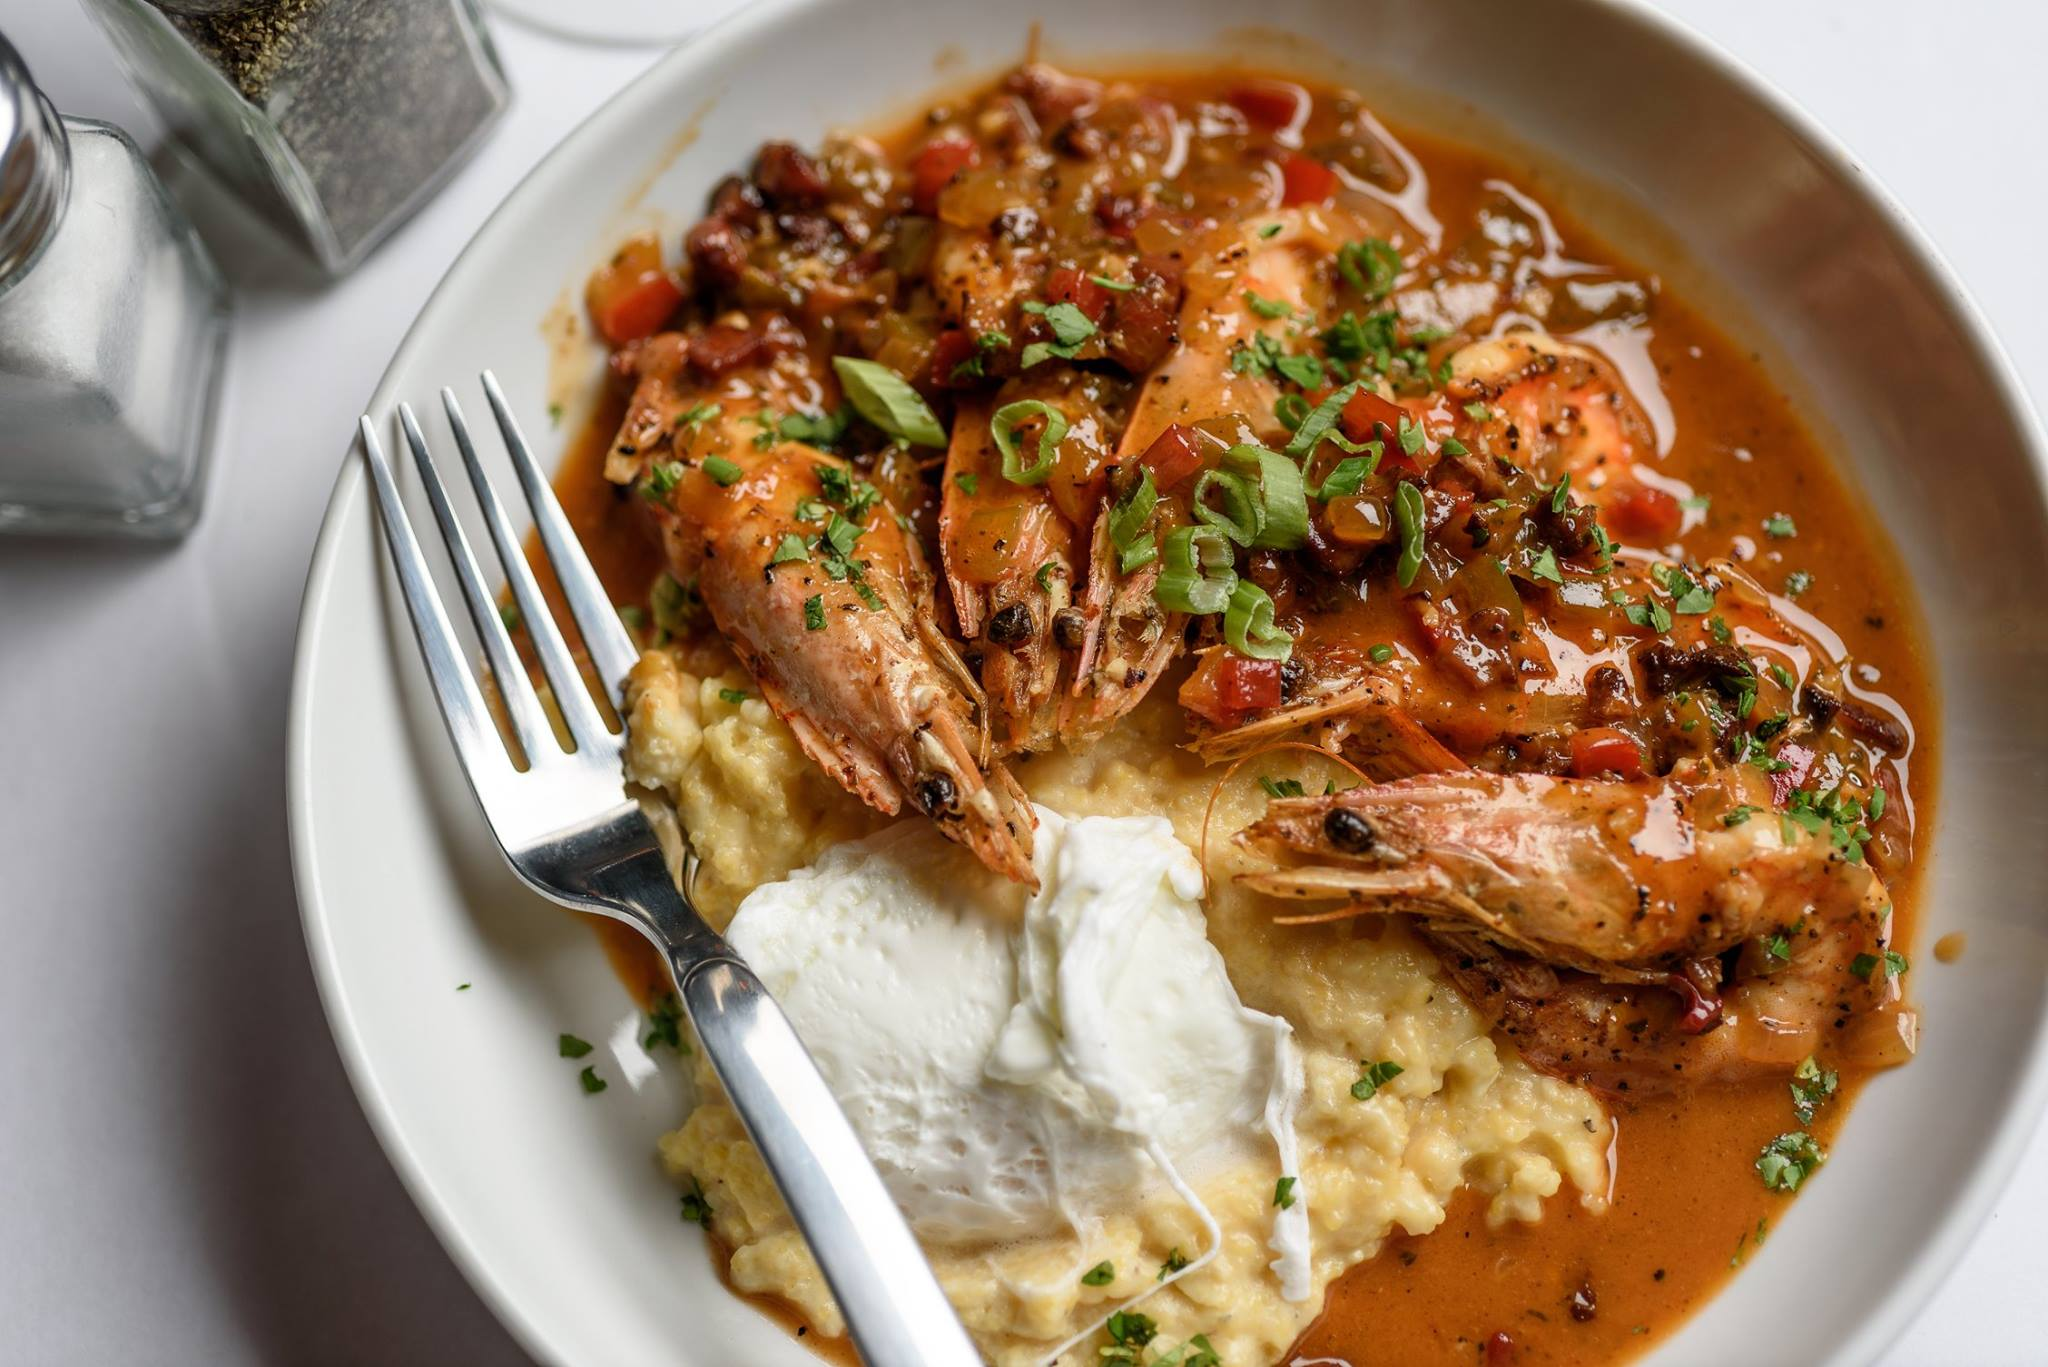 where to get lunch near the alder hotel uptown new orleans near tulane university